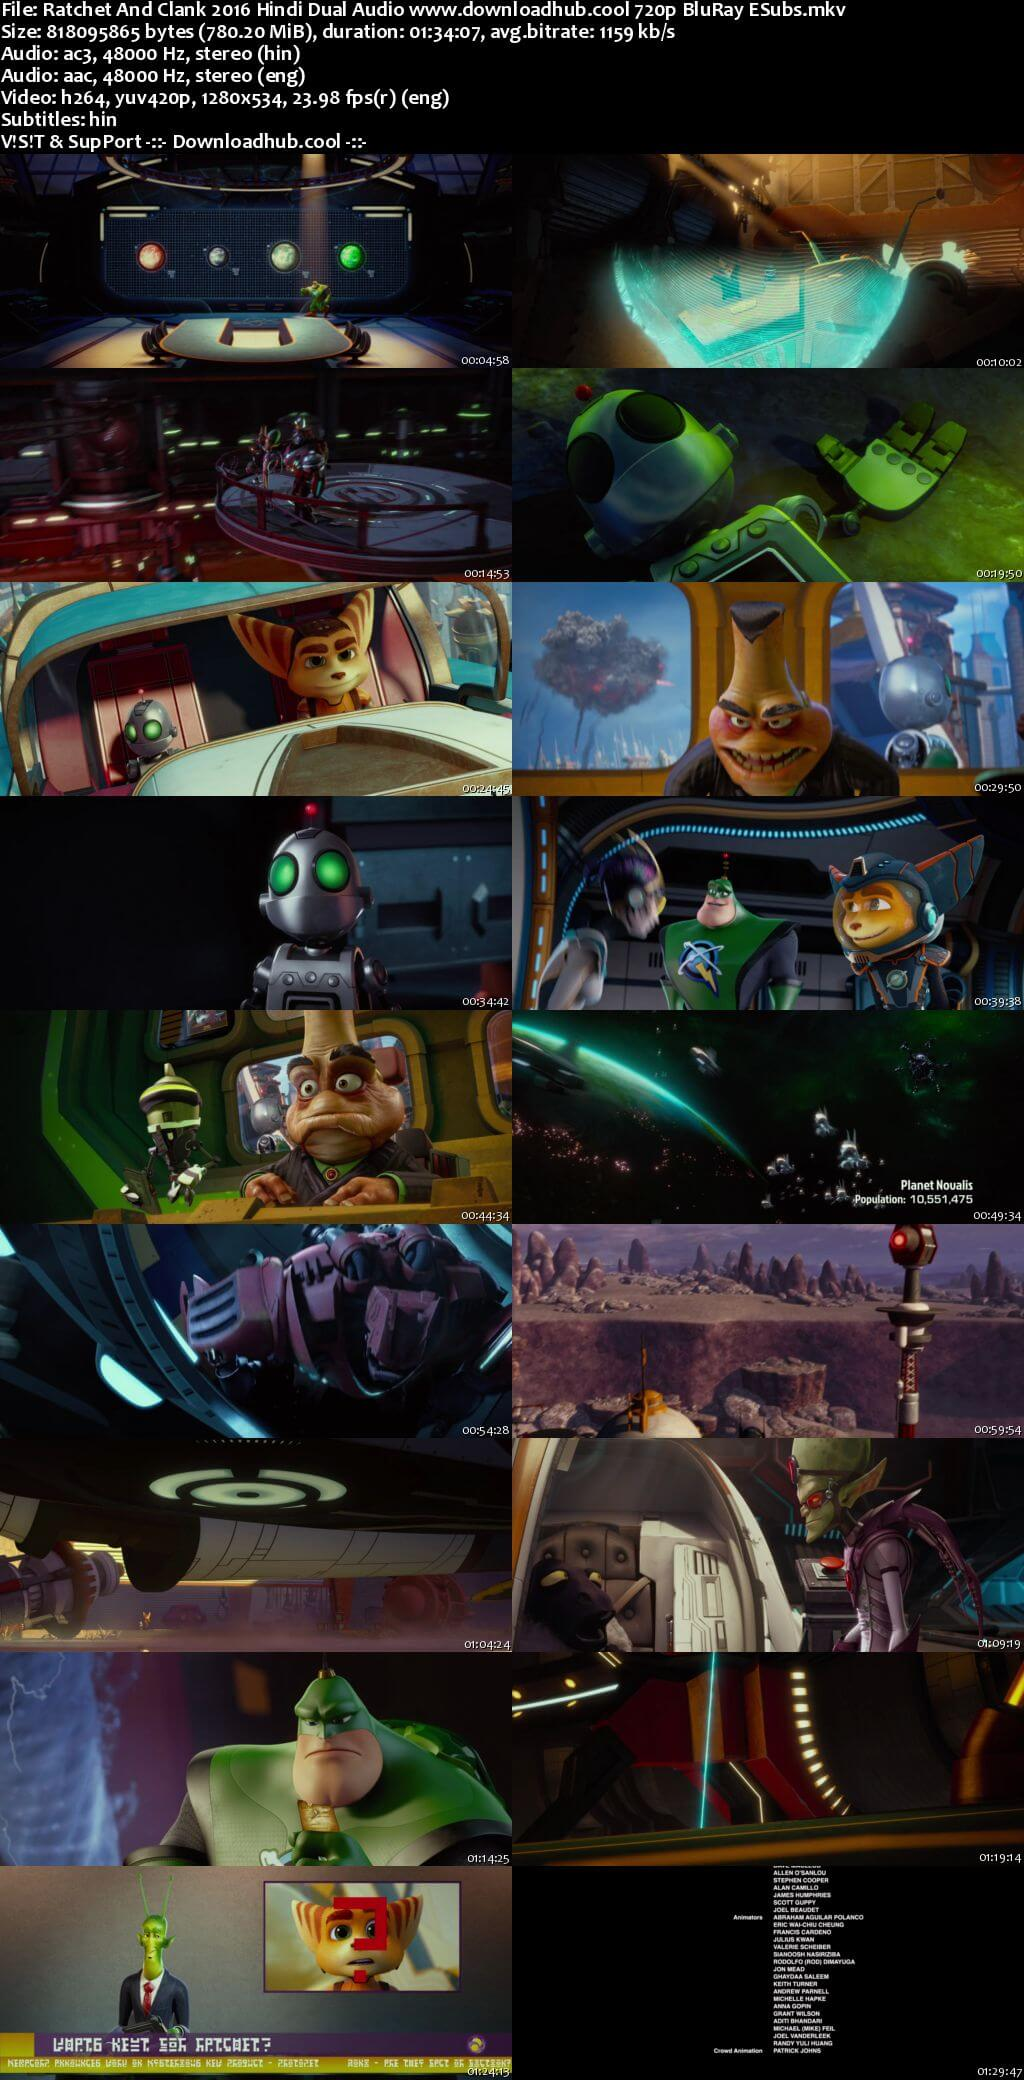 Ratchet And Clank 2016 Hindi Dual Audio 720p BluRay ESubs